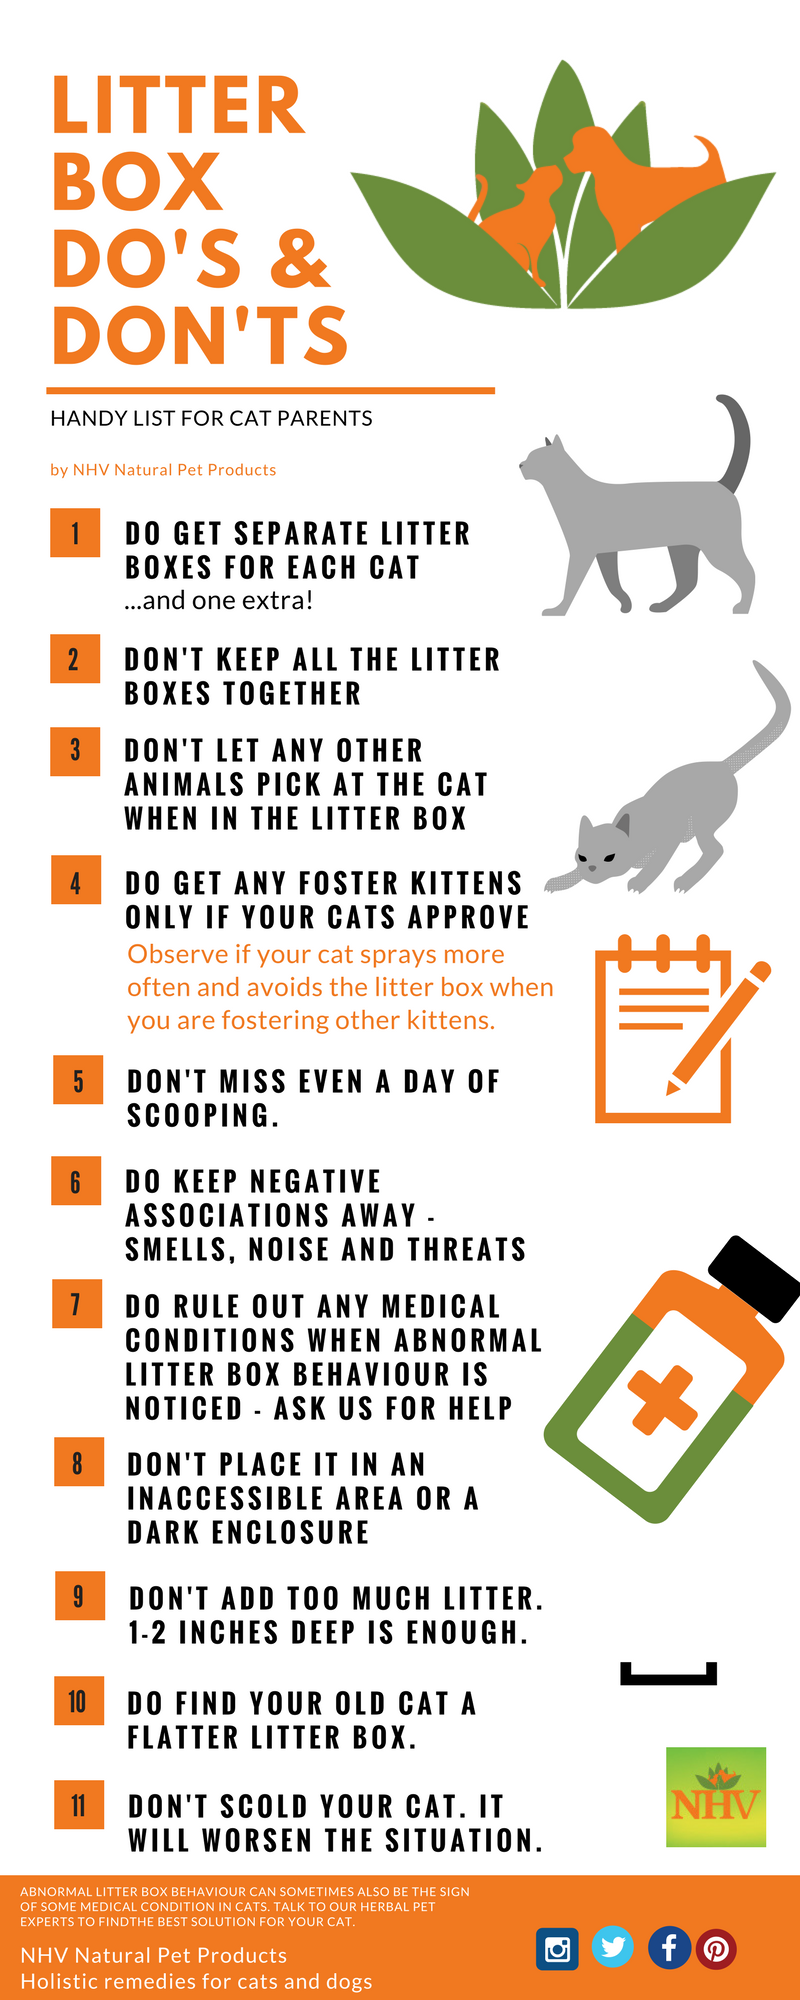 Here S A List Of Litter Box Do S And Don T For Cat Parents Has Your Cat Been Urinating Outside The Litter Box Litter Box Cat Parenting Cat Training Litter Box